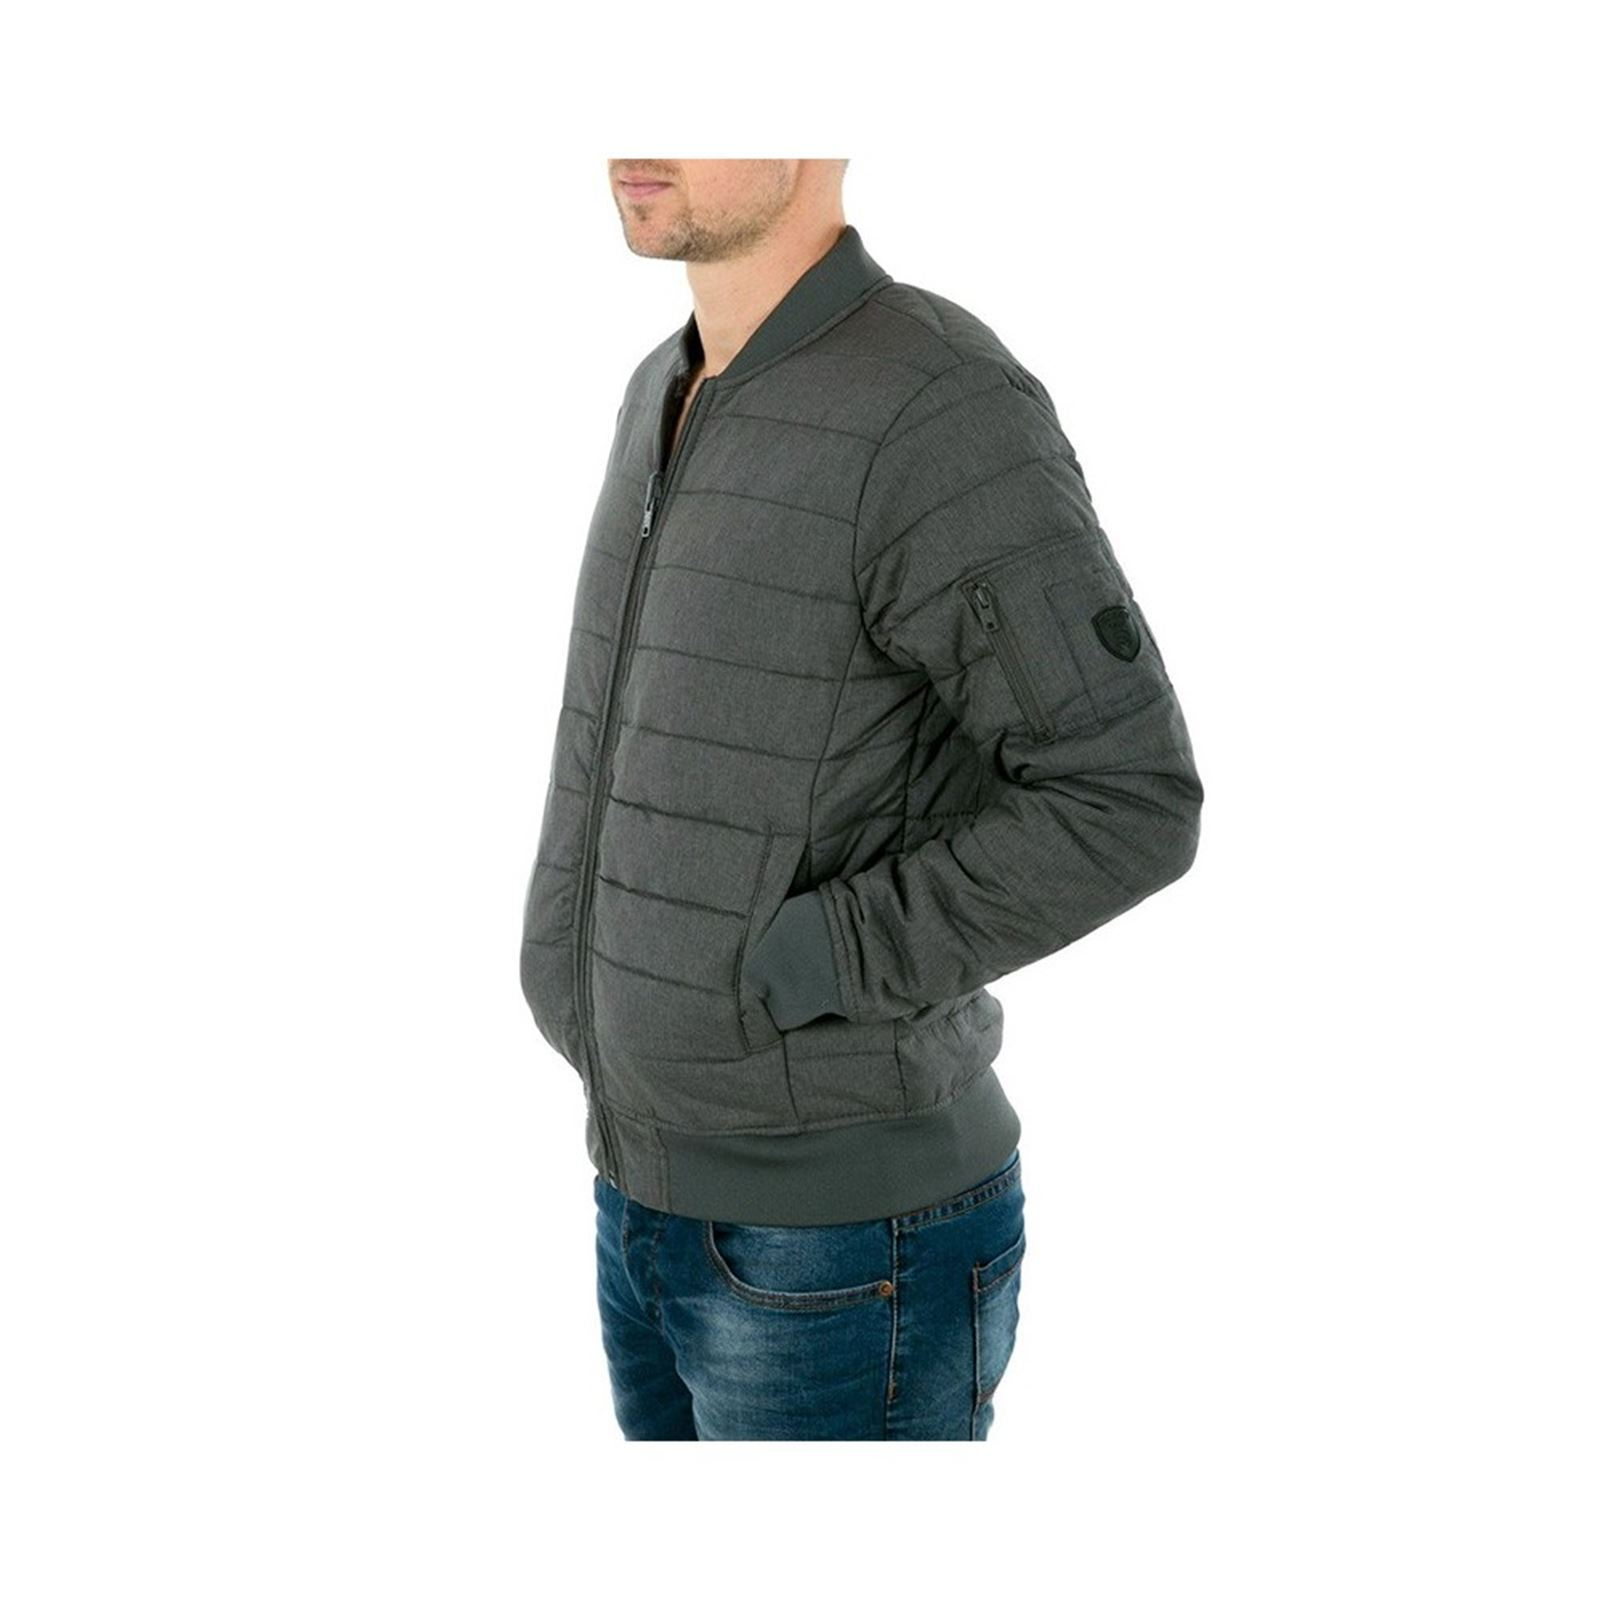 V Homme Crossby BlousonGris Crossby BlousonGris V Homme BlousonGris Crossby Homme y8wmnv0ON